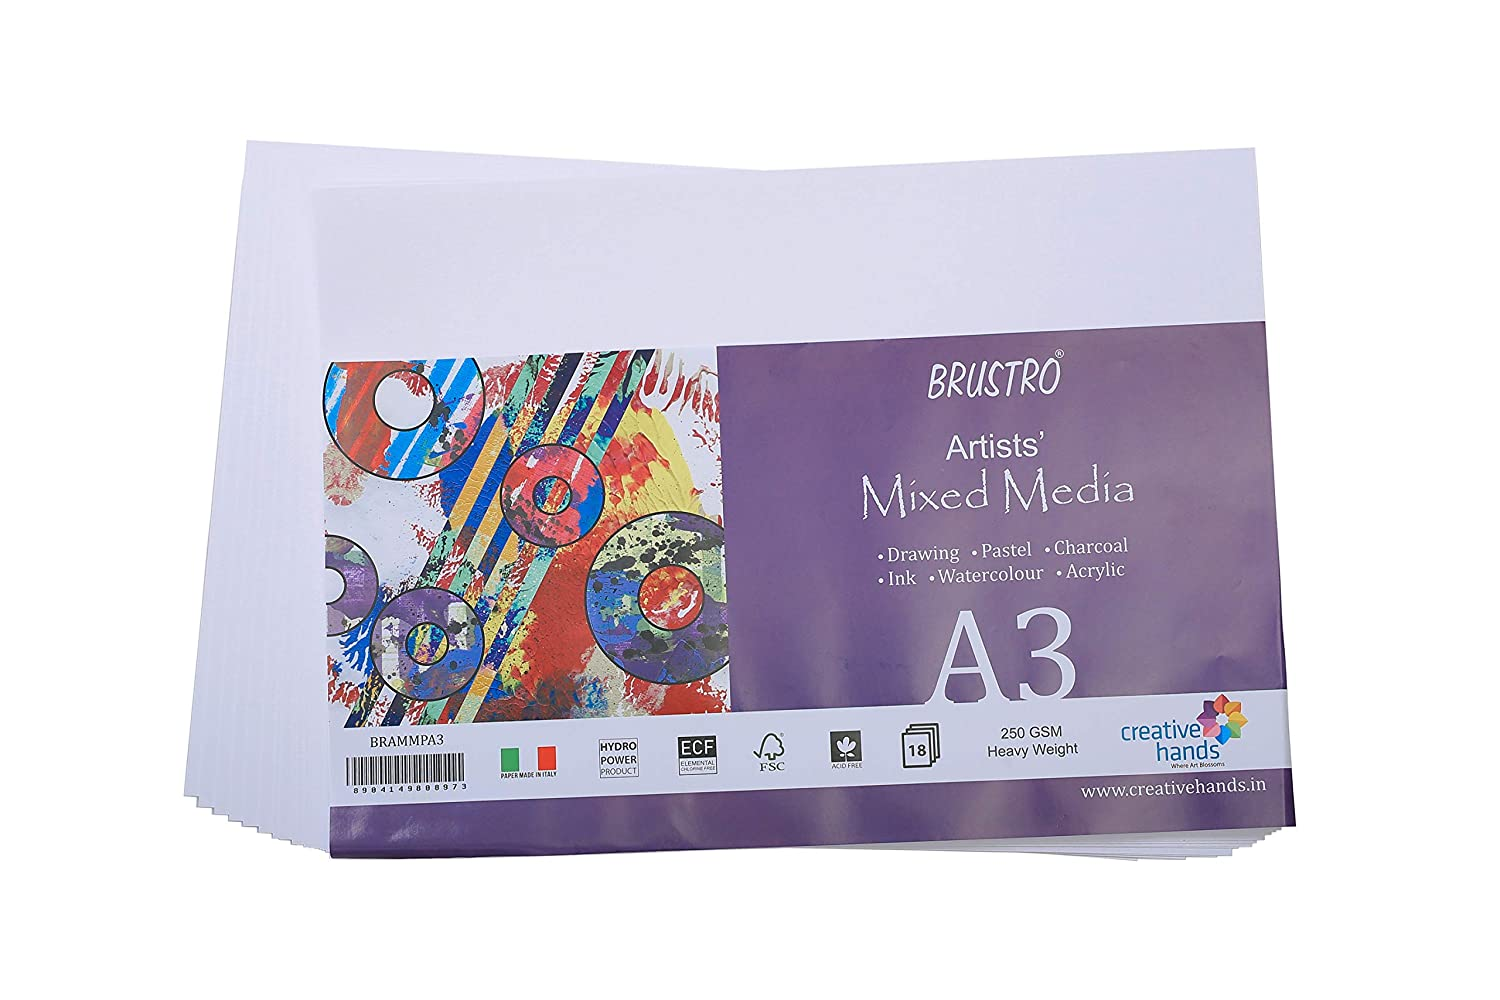 Brustro Artists Mixed Media Paper 250 GSM Size - A3, 18 Sheets